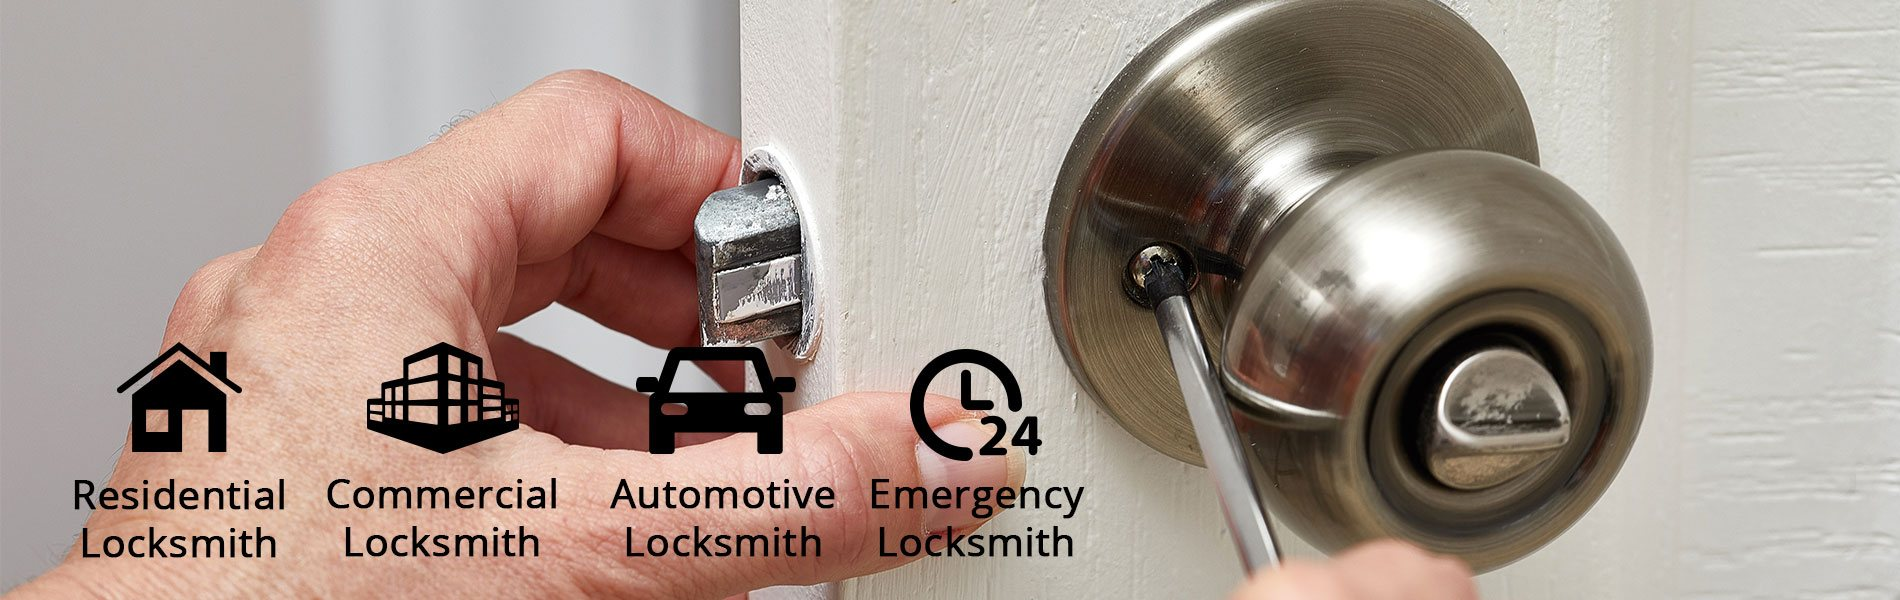 Lock Locksmith Services Derby, CT 203-278-5064